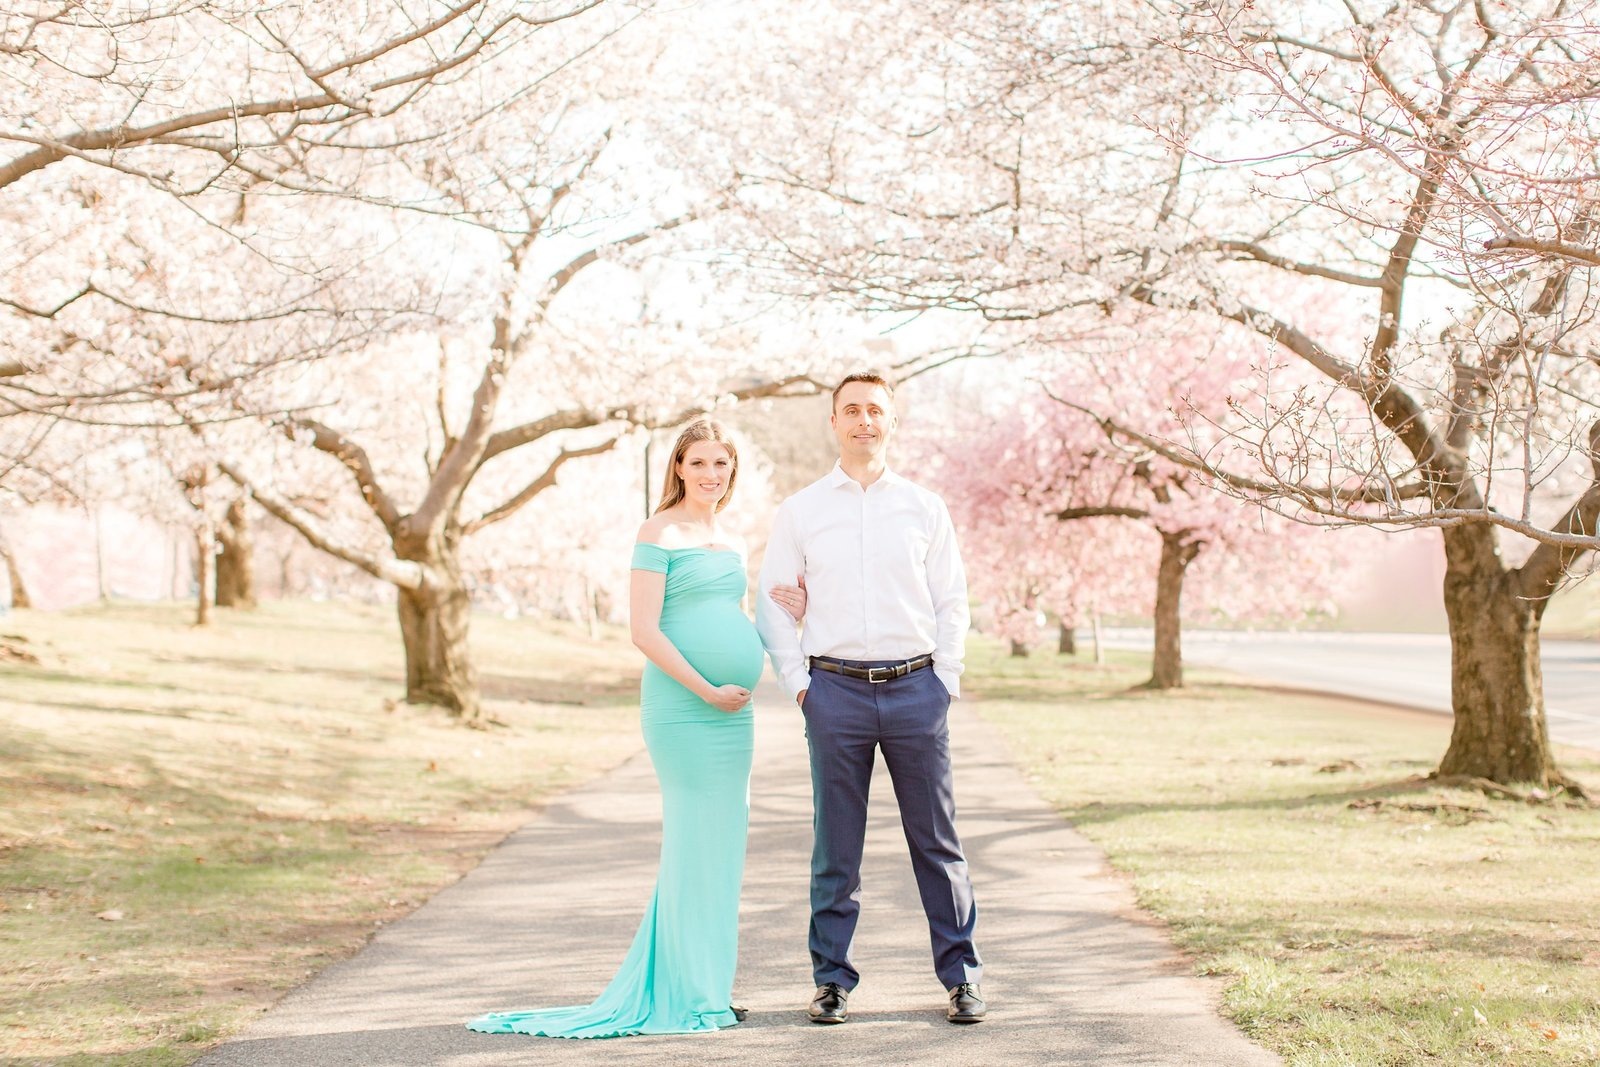 Maternity Session with Cherry Blossoms